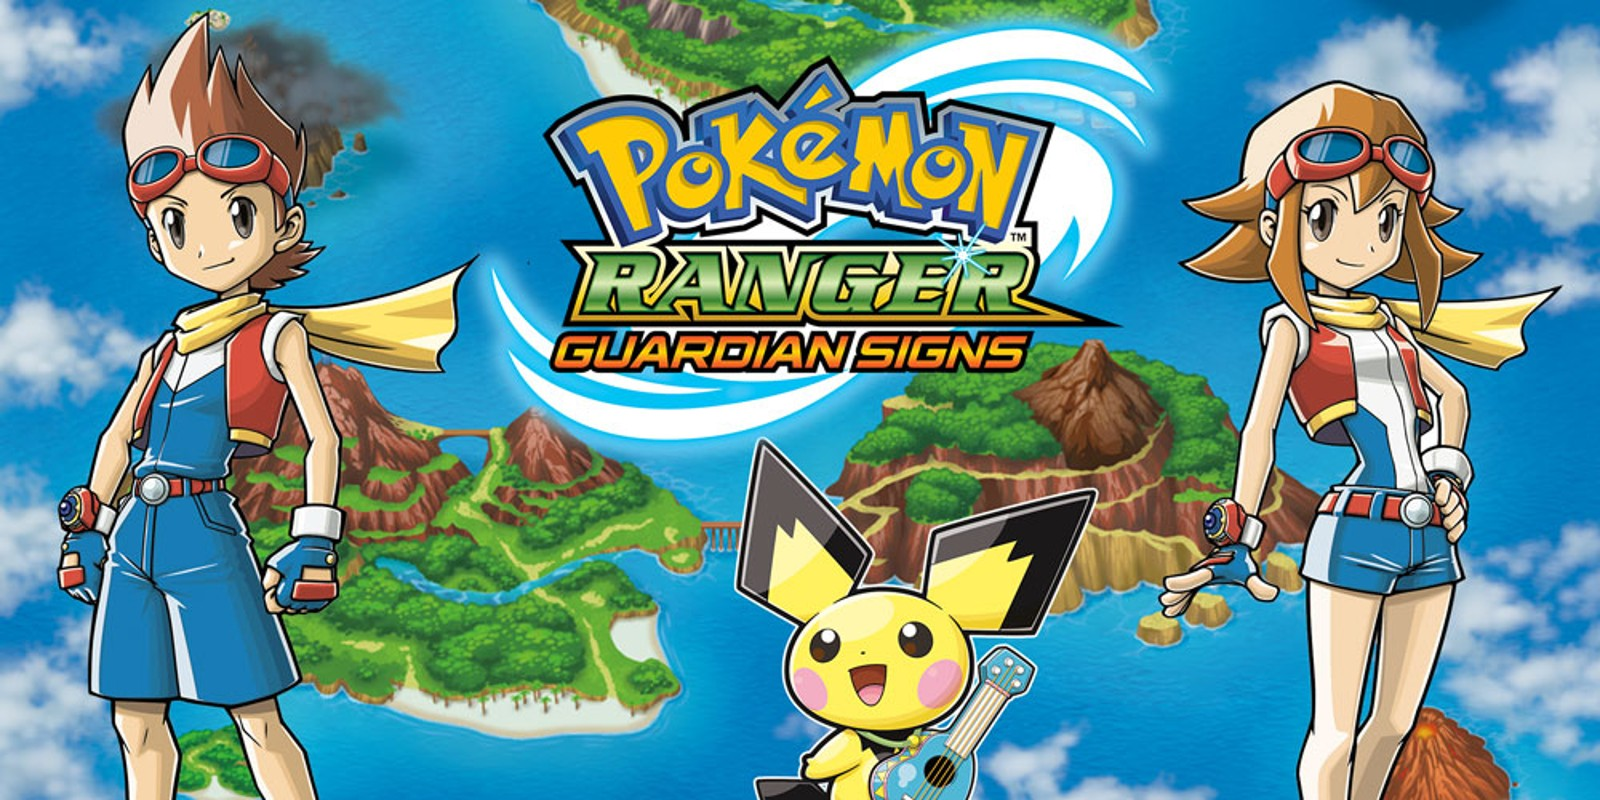 Nintendo Ds Pokemon Games : Pokémon ranger guardian signs nintendo ds games